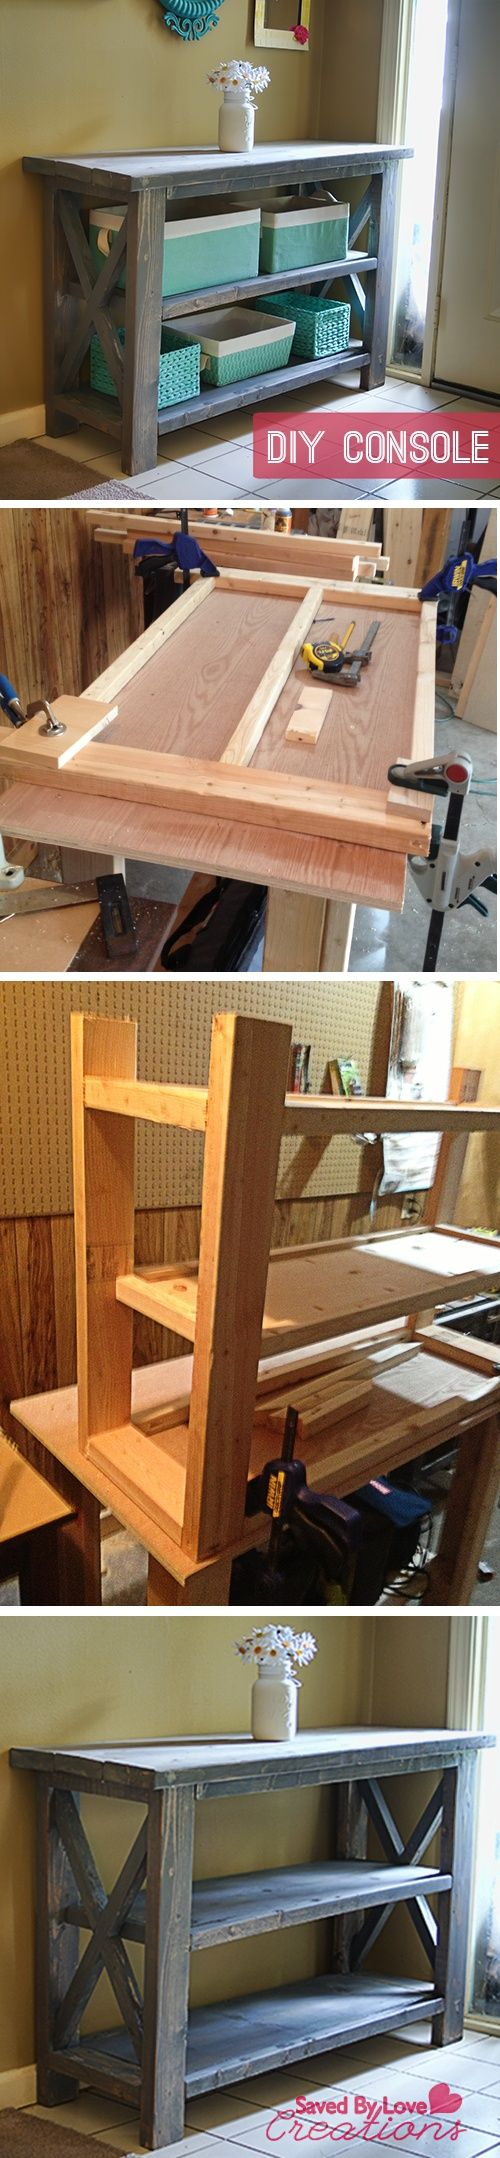 rustic console tables kitchen console table Rustic Console Table woodworking DIY plan from Ana White I need a place to